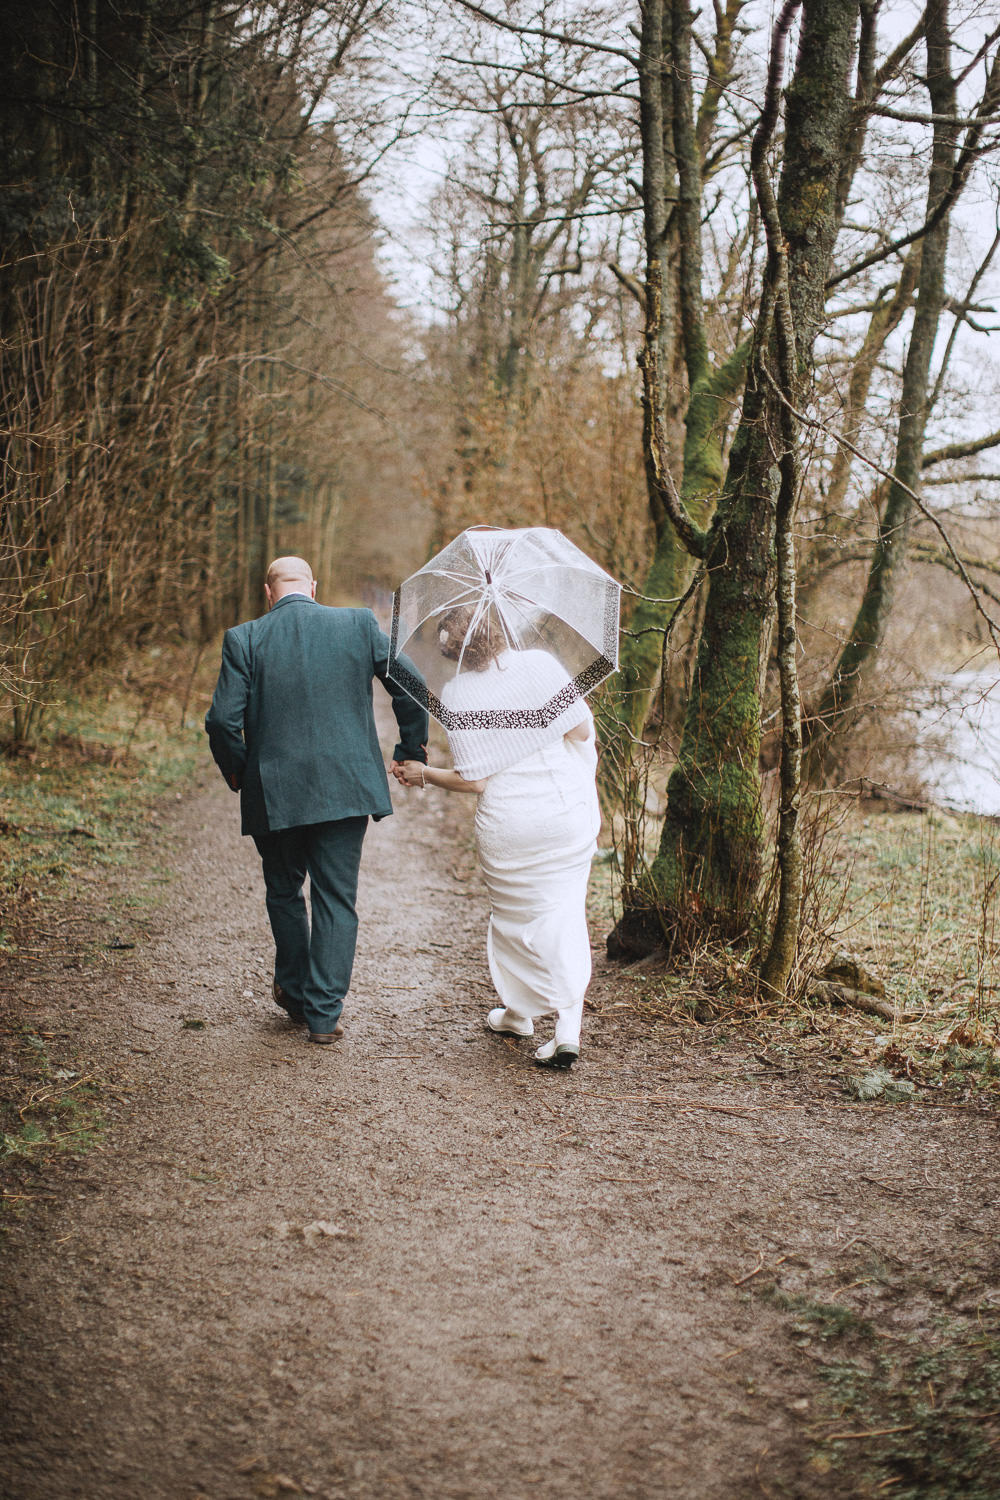 bride and groom walking in a country path with wellies and an umbrella